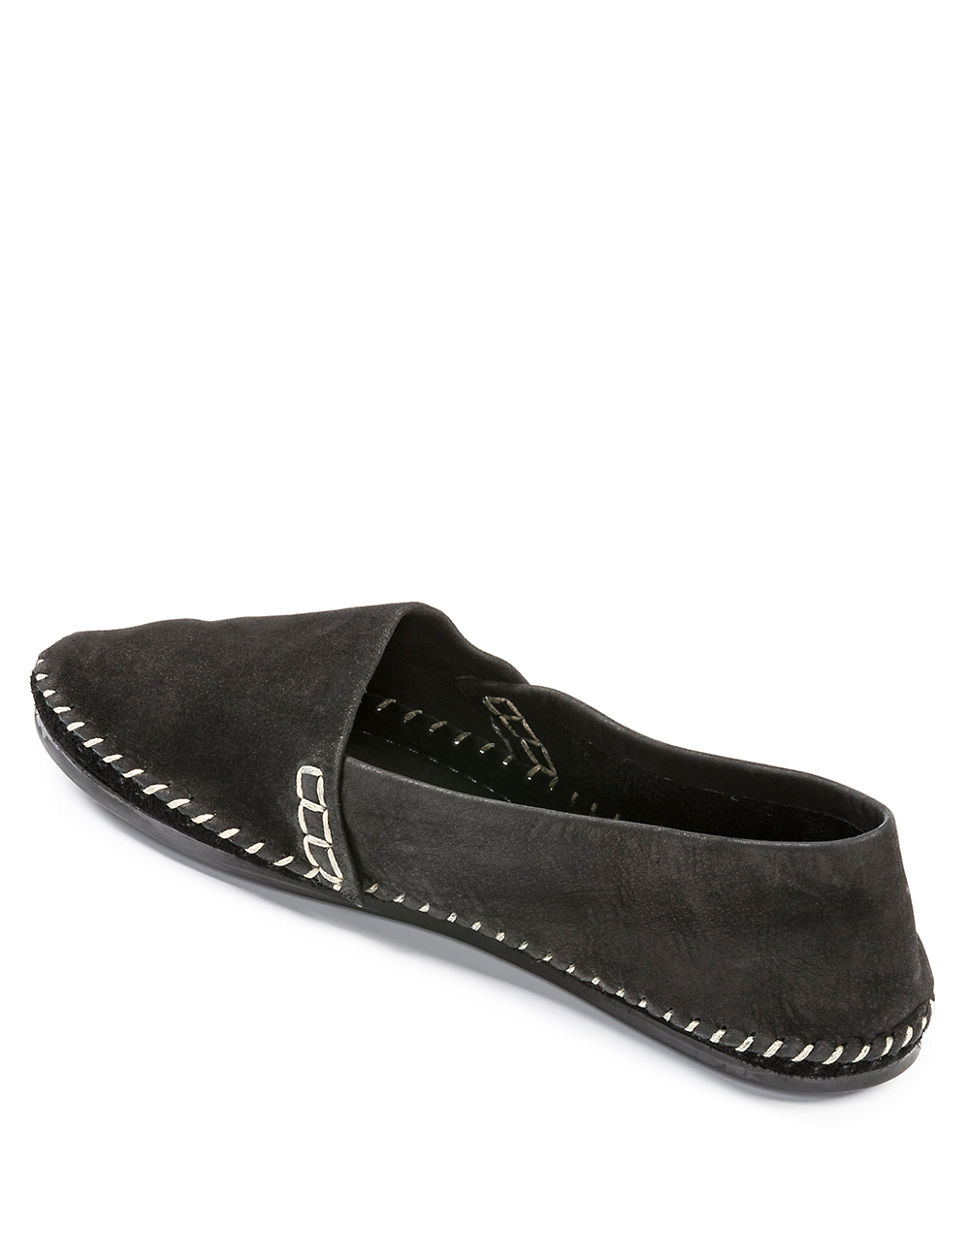 Taylor Tucker Leather Shoes